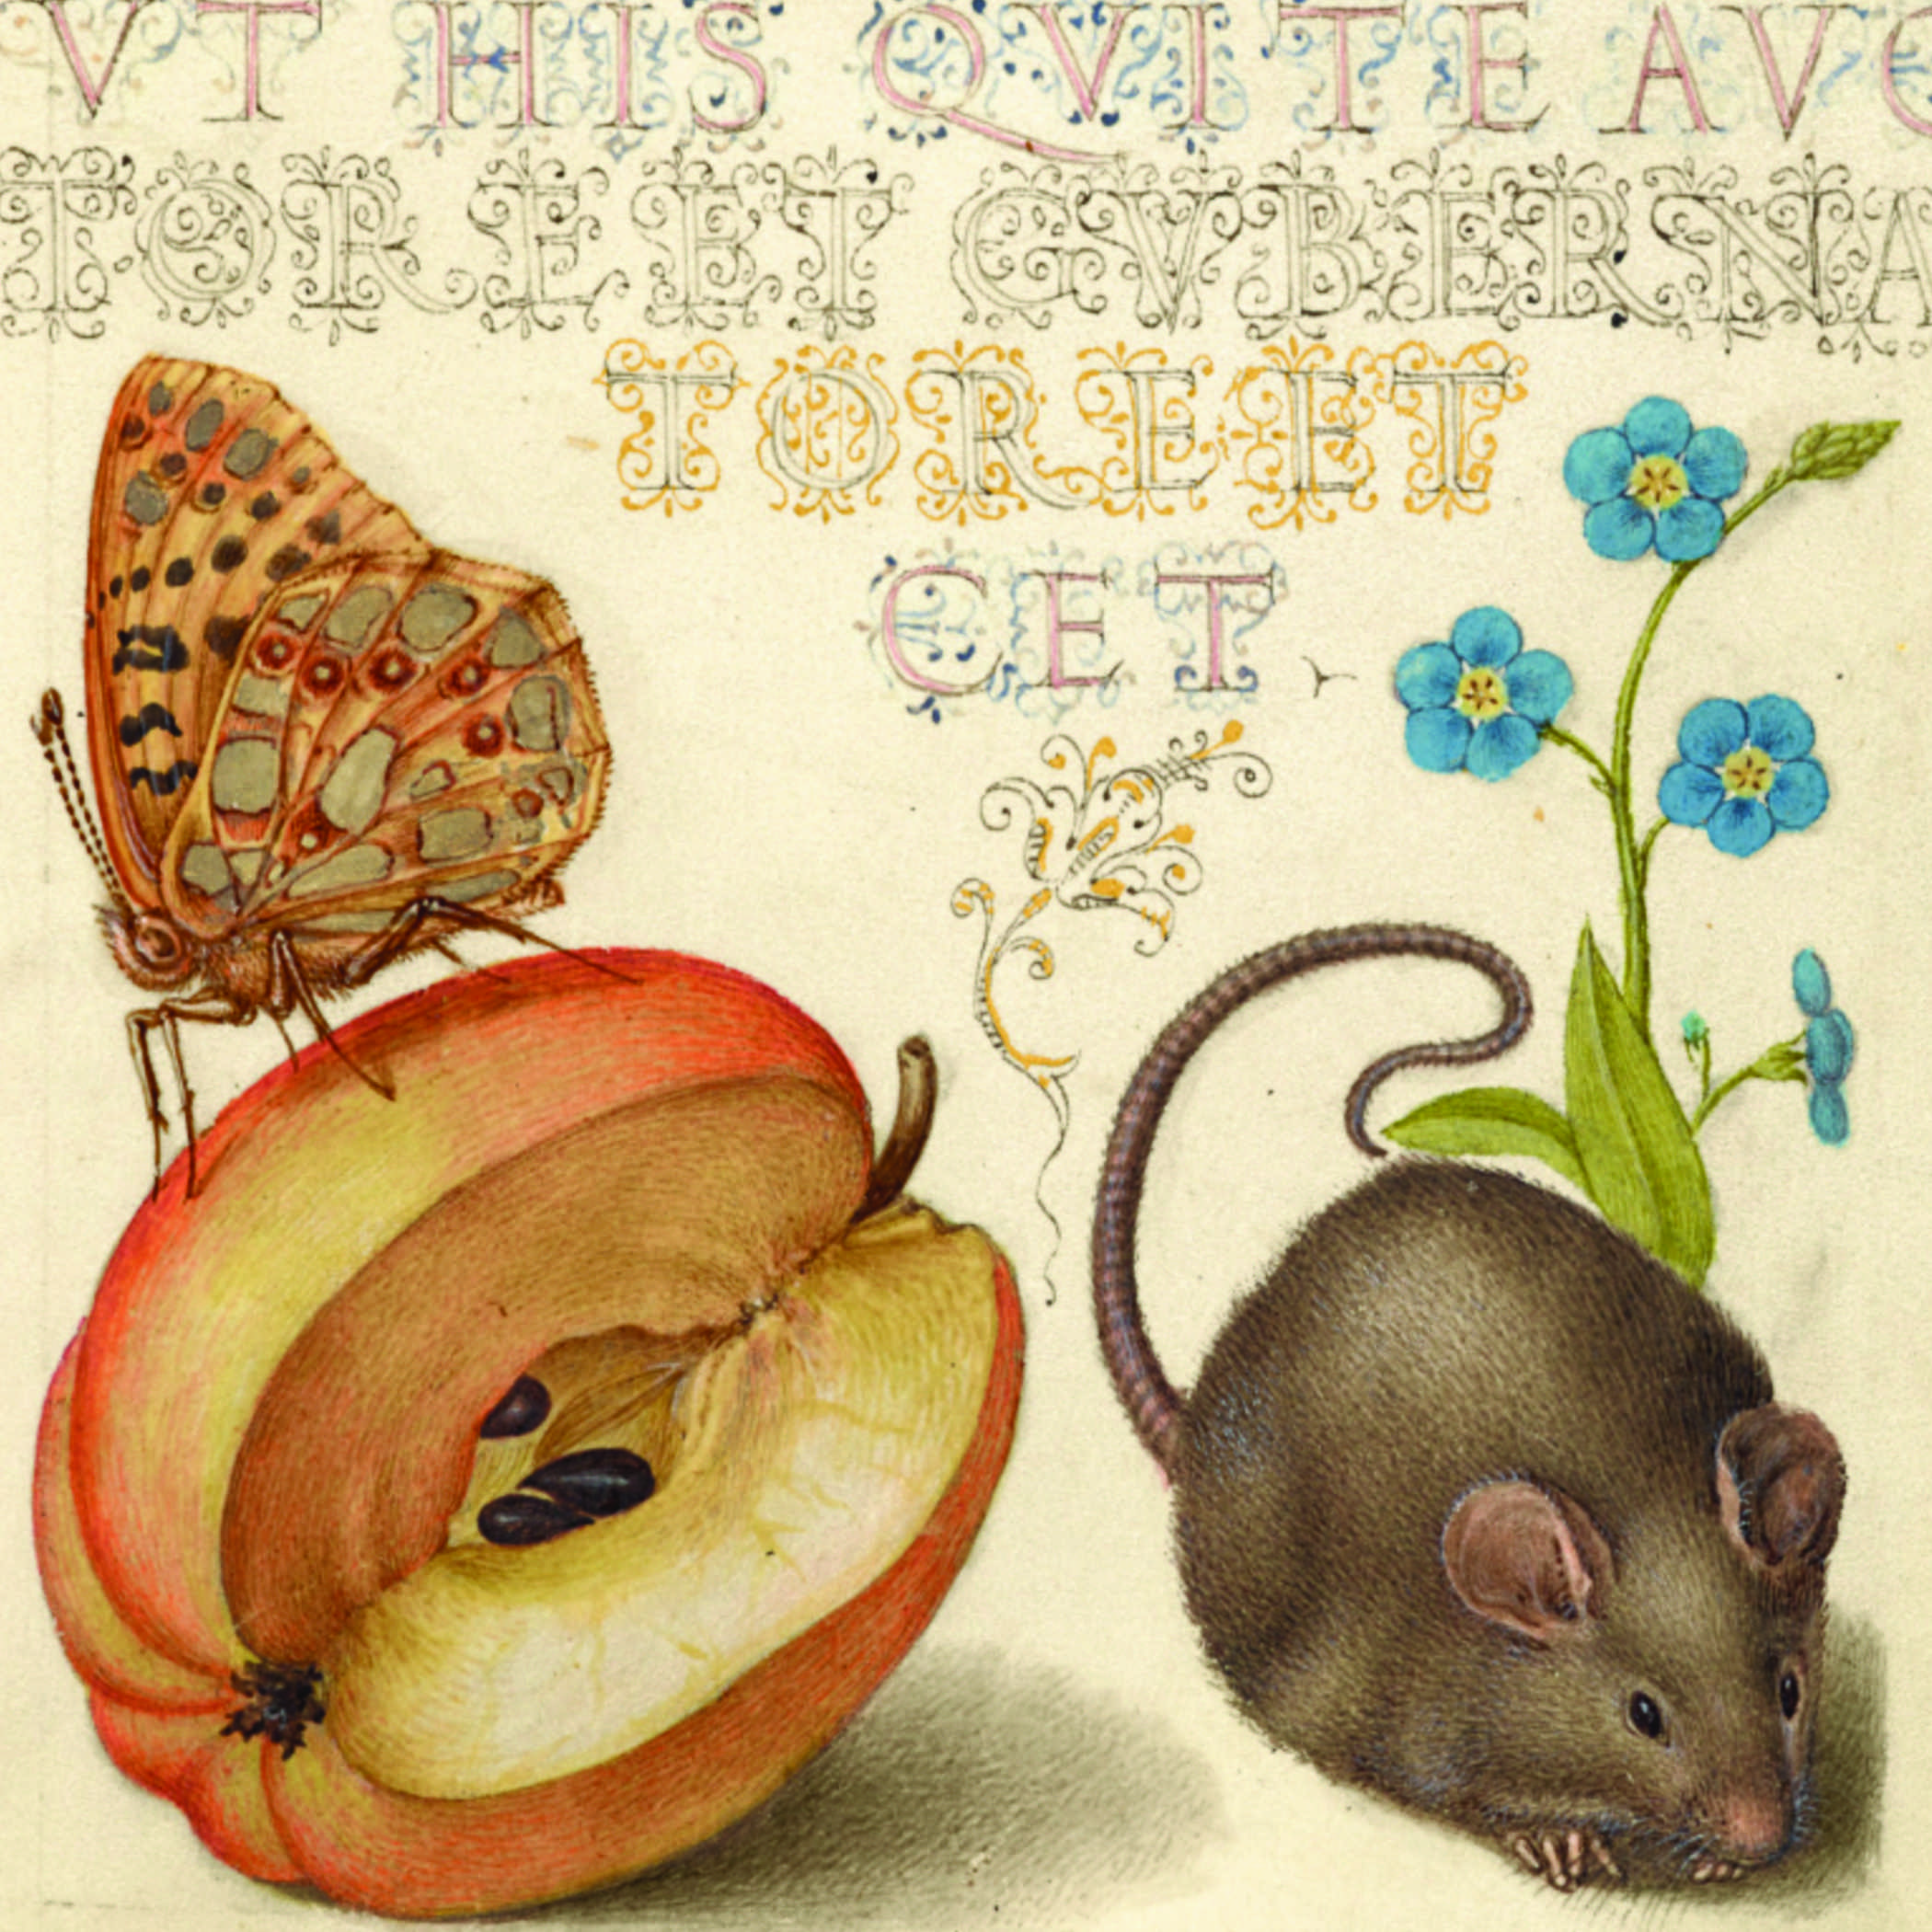 medieval illuminated text with pictures of a mouse, an apple, and a moth sitting on the apple